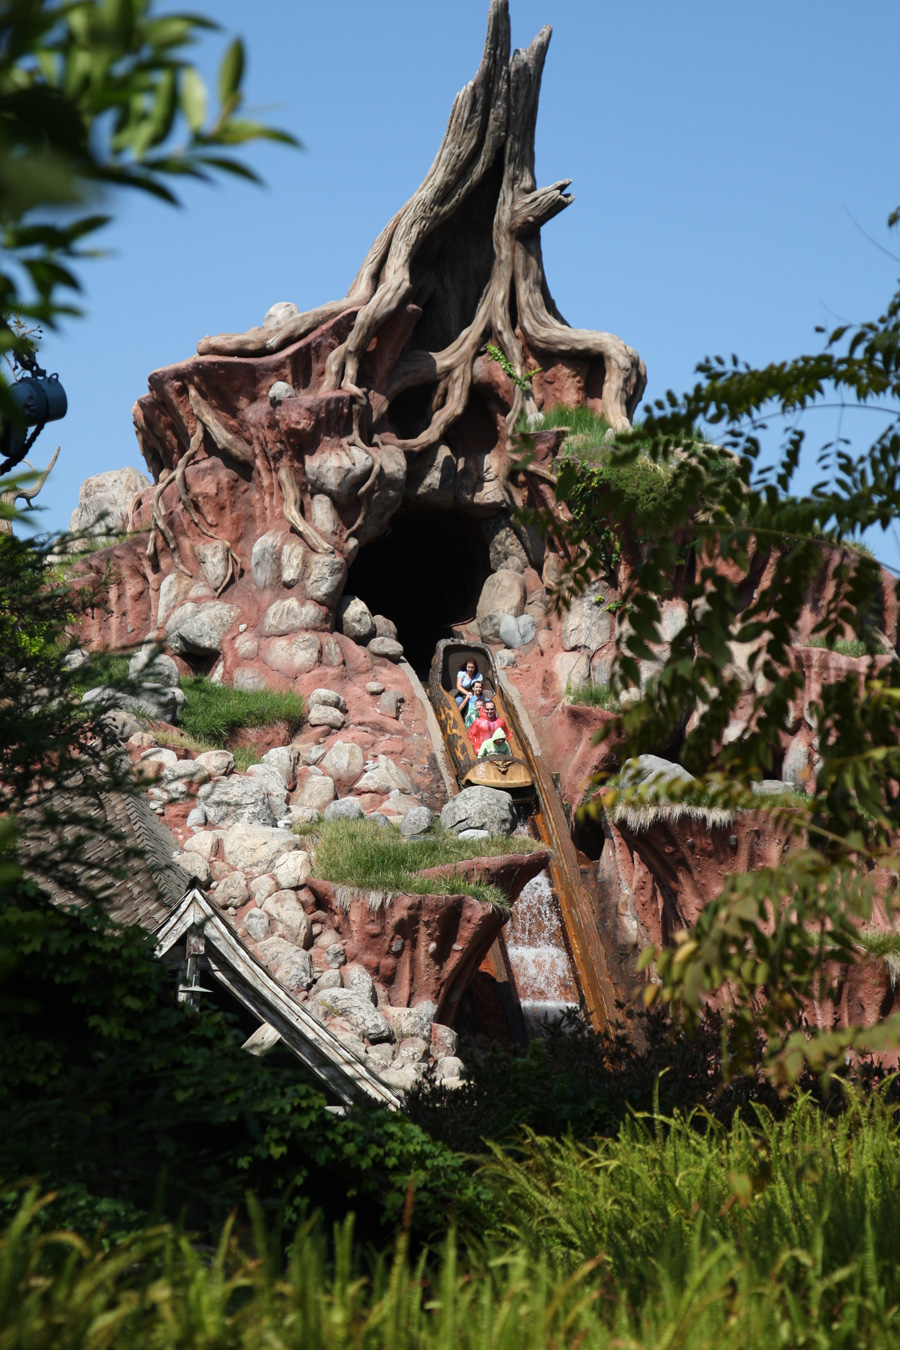 Outside of Splash Mountain during the daytime